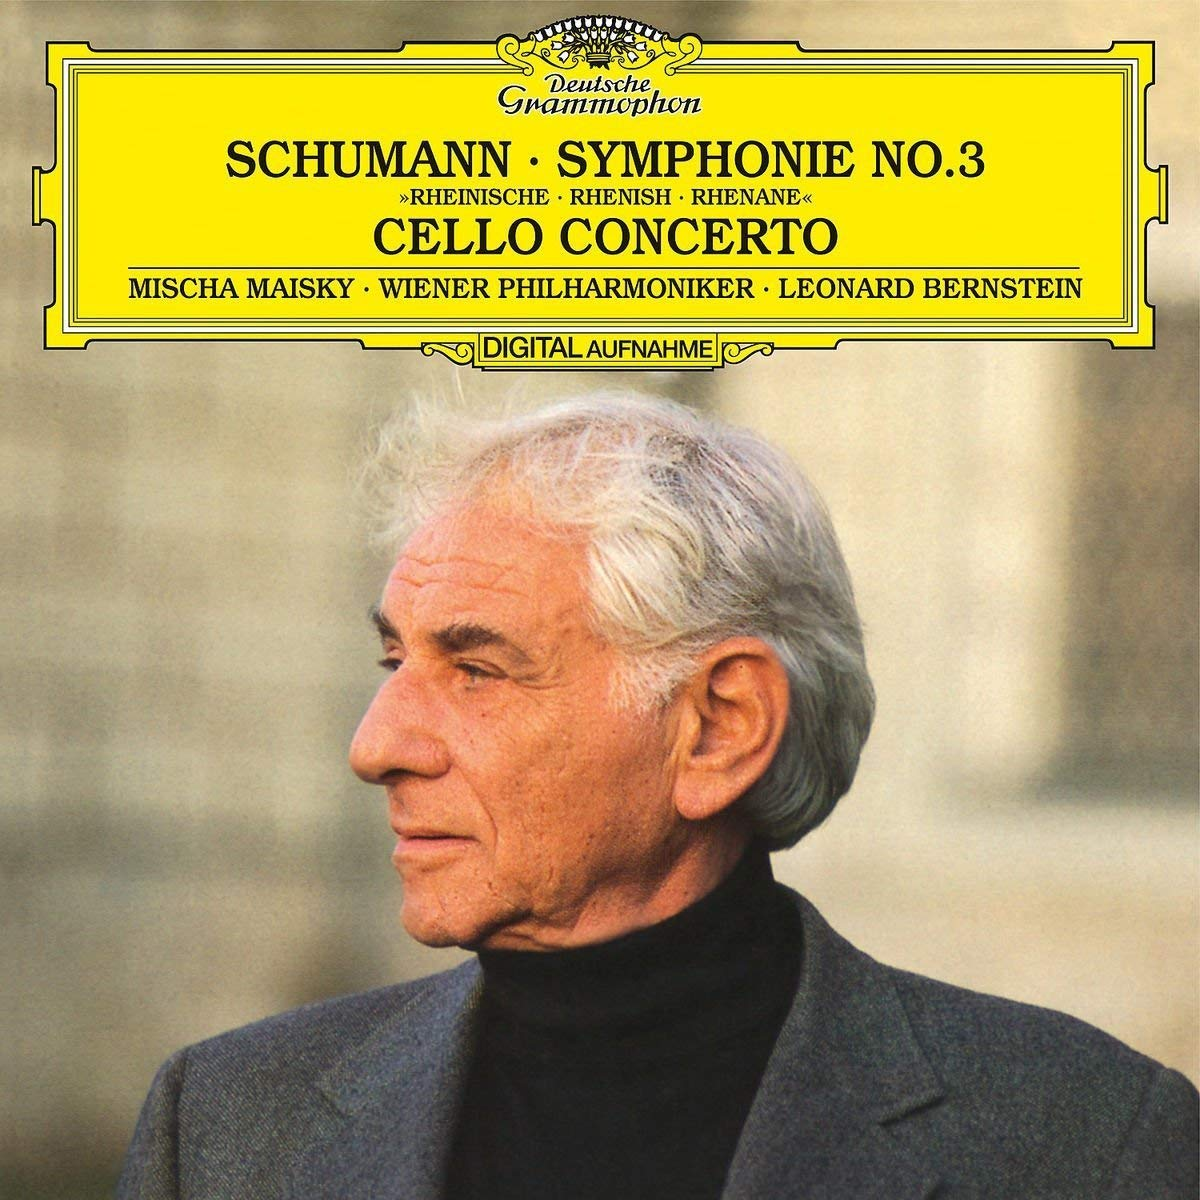 "Schumann: Symphony No.3 In E Flat, Op.97 - ""Rhenish""; Cello Concerto In A Minor, Op.129 - Vinyl"